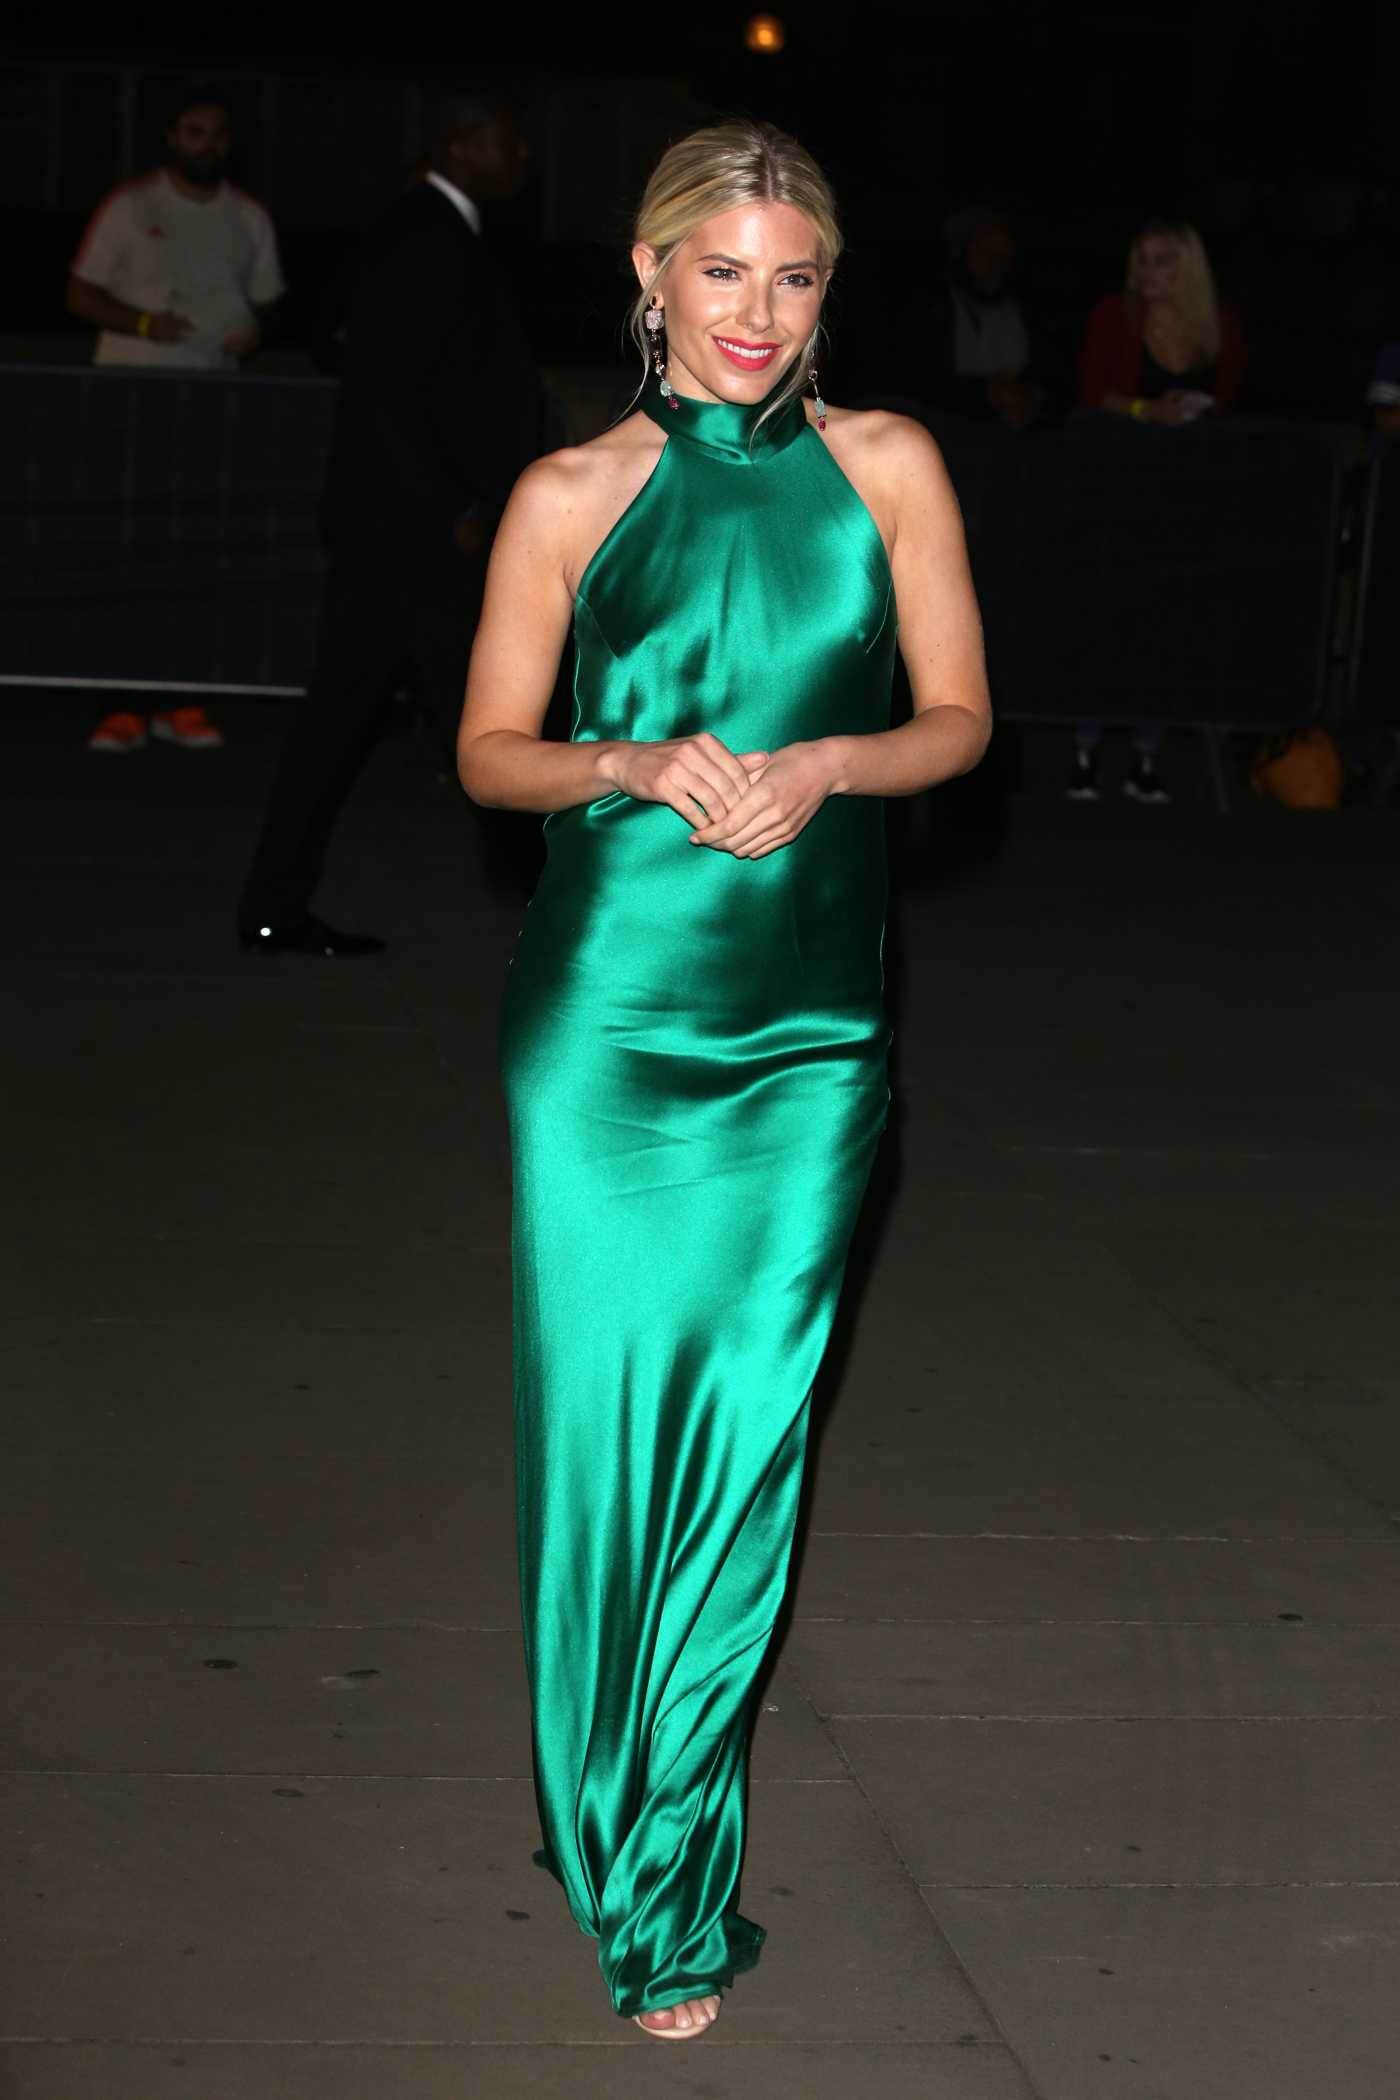 Mollie King in a Green Dress Arrives at the British Museum in London 09/14/2019